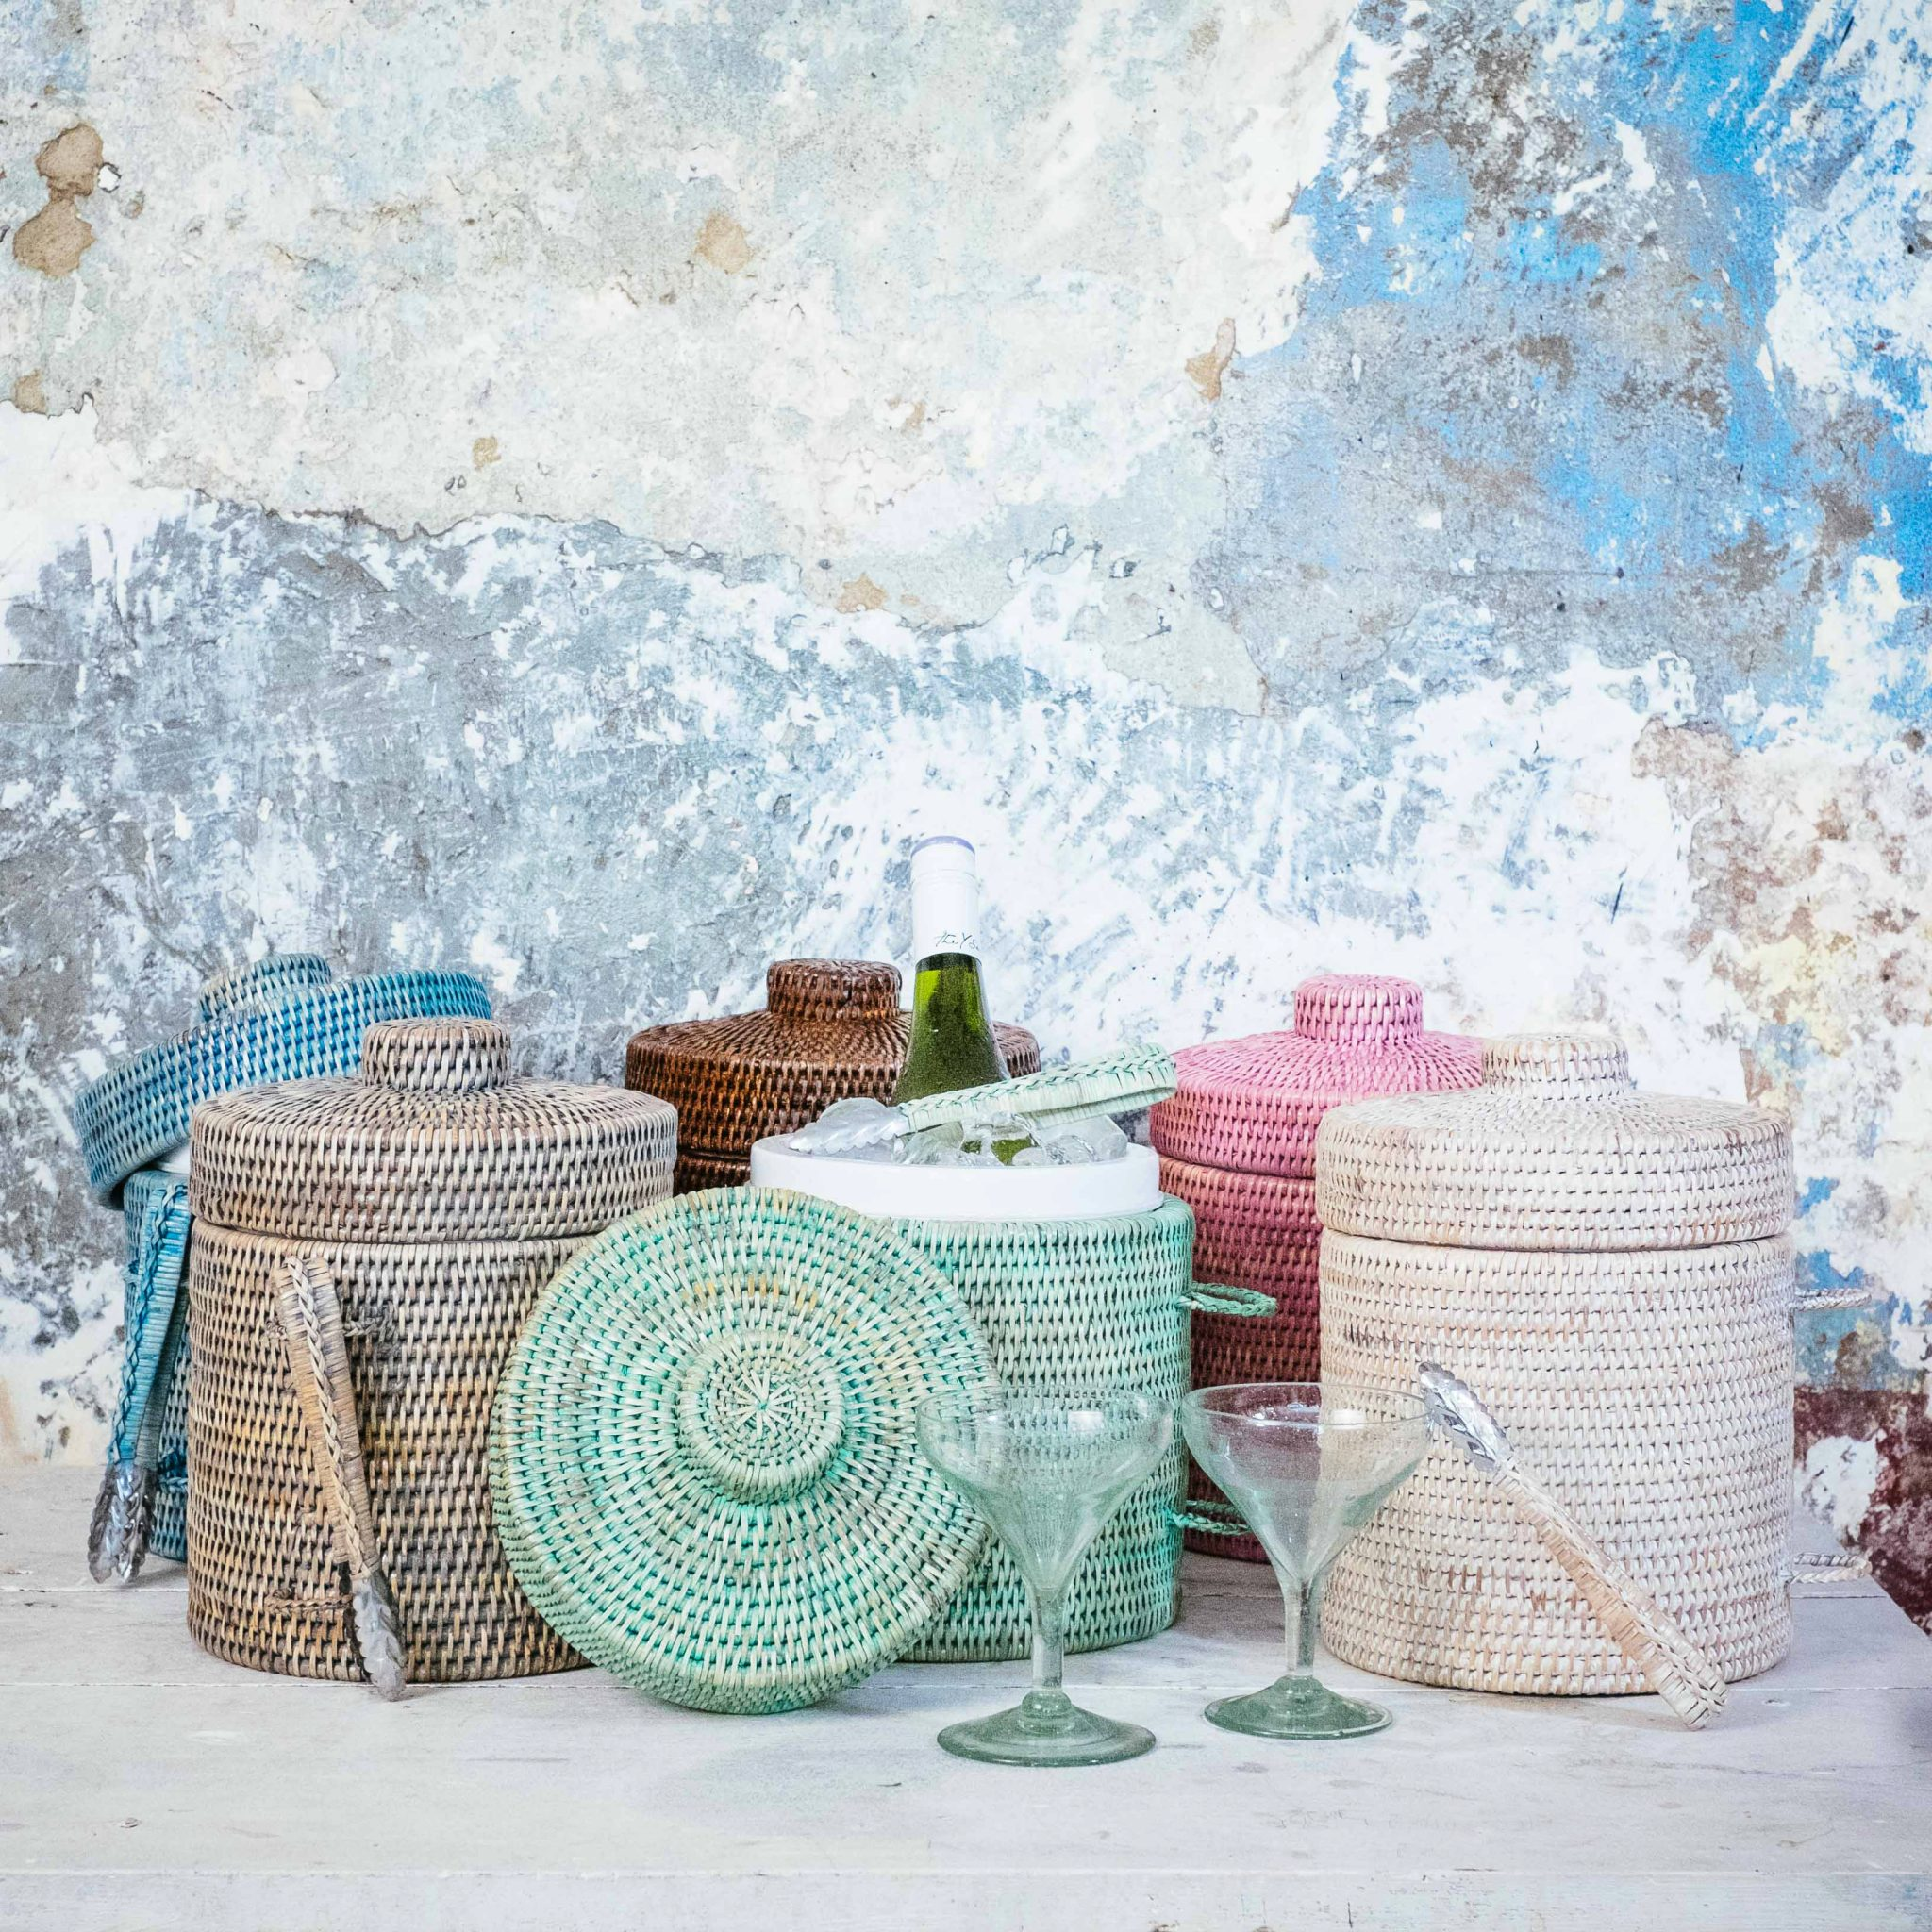 Woven ice buckets from Burmese homeware brand Kalinko